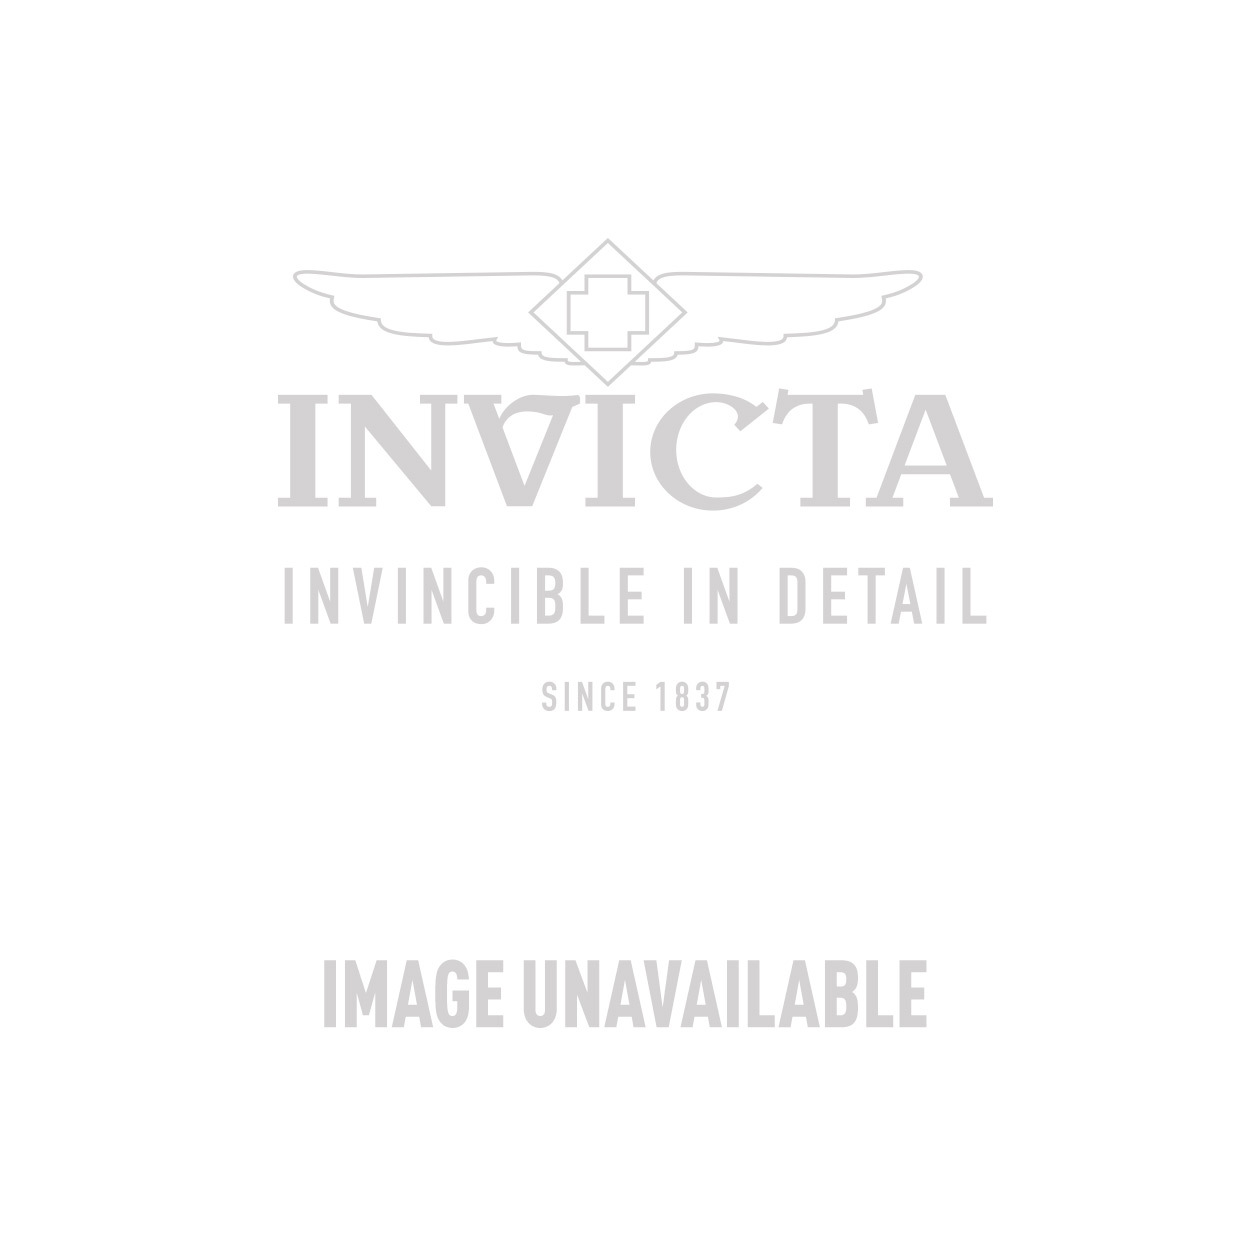 Invicta 21cm Men's Bracelets in Rhodium - Model J0007